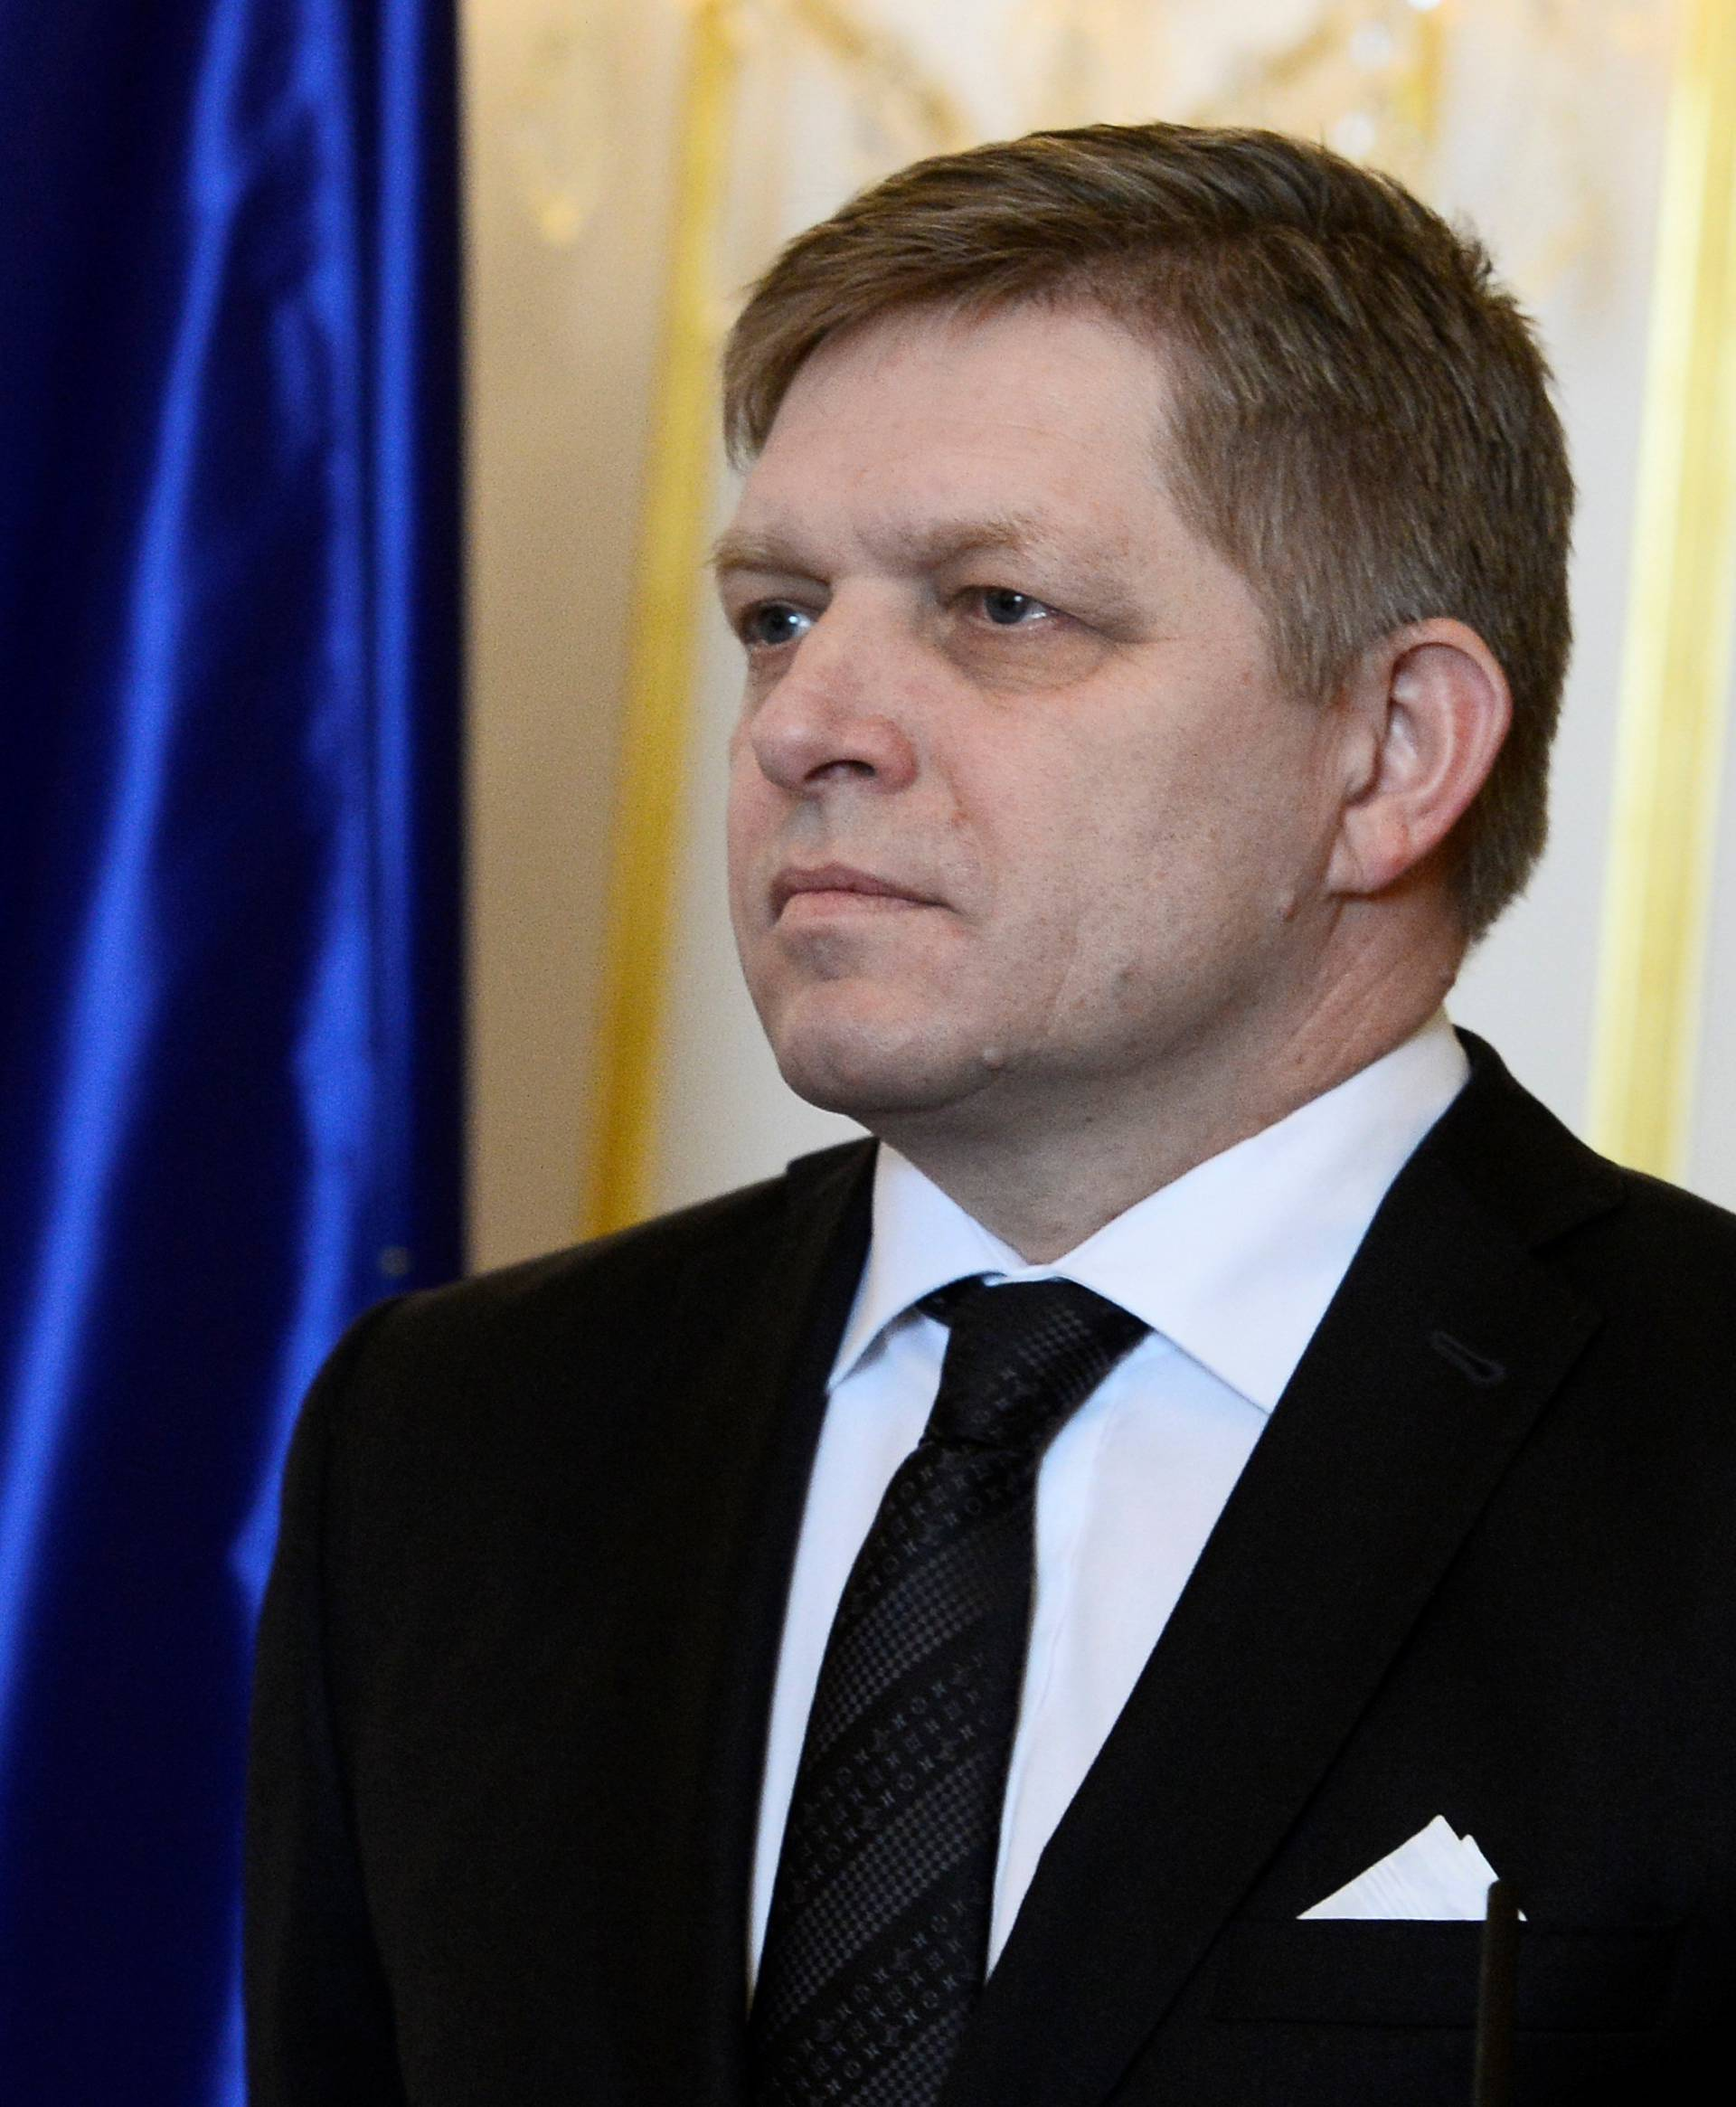 Slovakia's Prime Minister Robert Fico reacts after a meeting of Slovakia's three top officials at the Bratislava castle